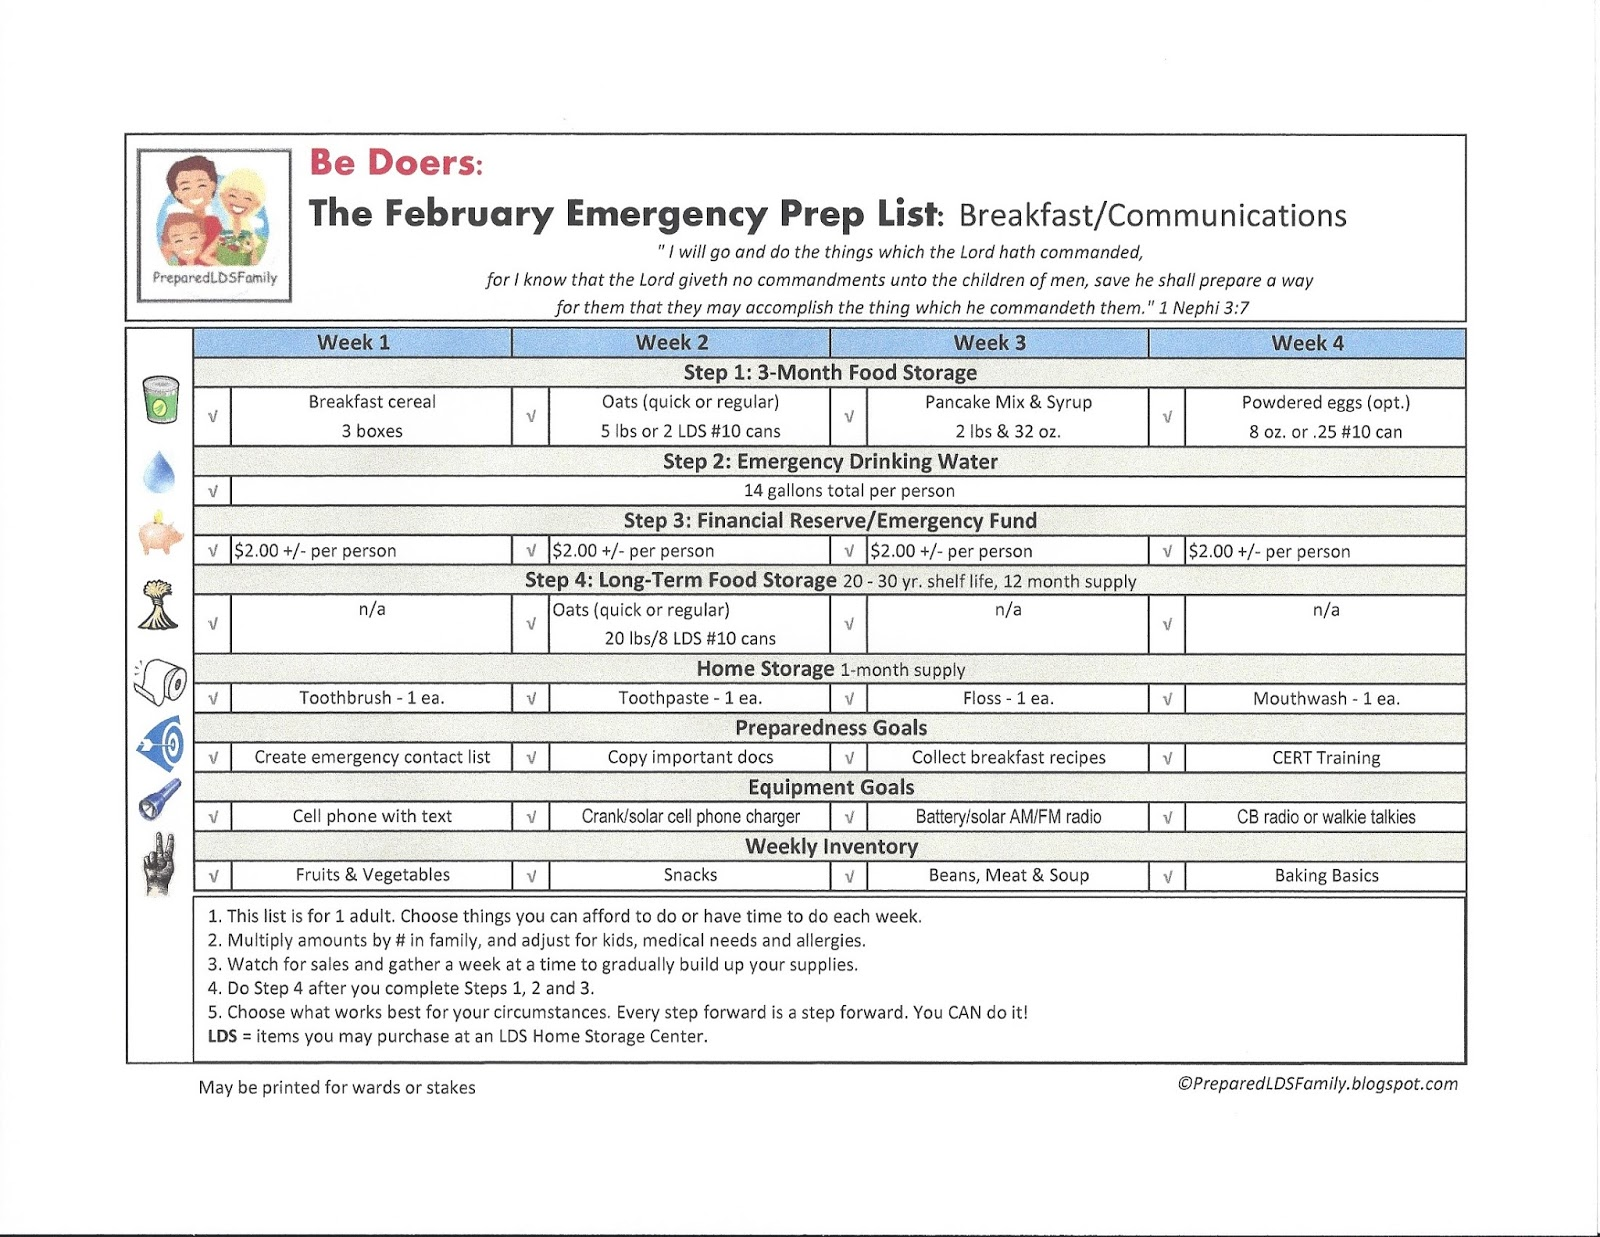 Prepared lds family february emergency preparedness goals prepared lds family february emergency preparedness goals breakfast foods and emergency communications forumfinder Choice Image